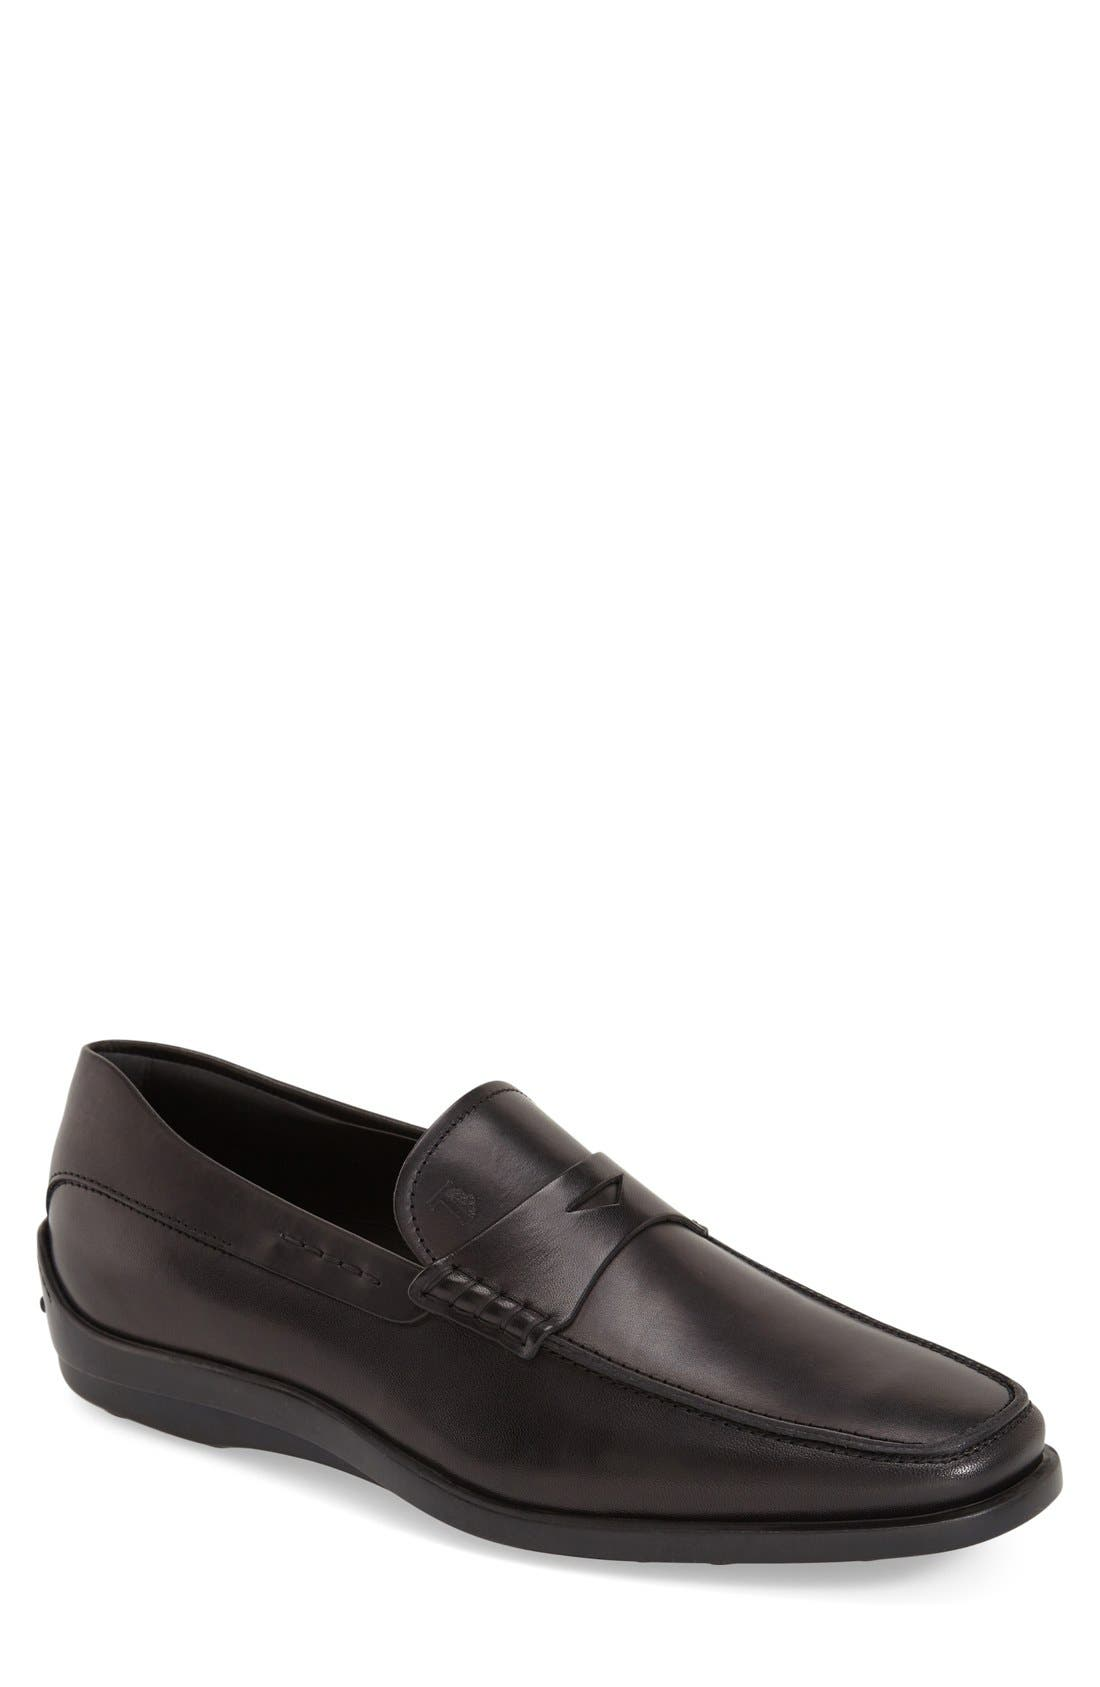 Alternate Image 1 Selected - Tod's 'Quinn' Penny Loafer